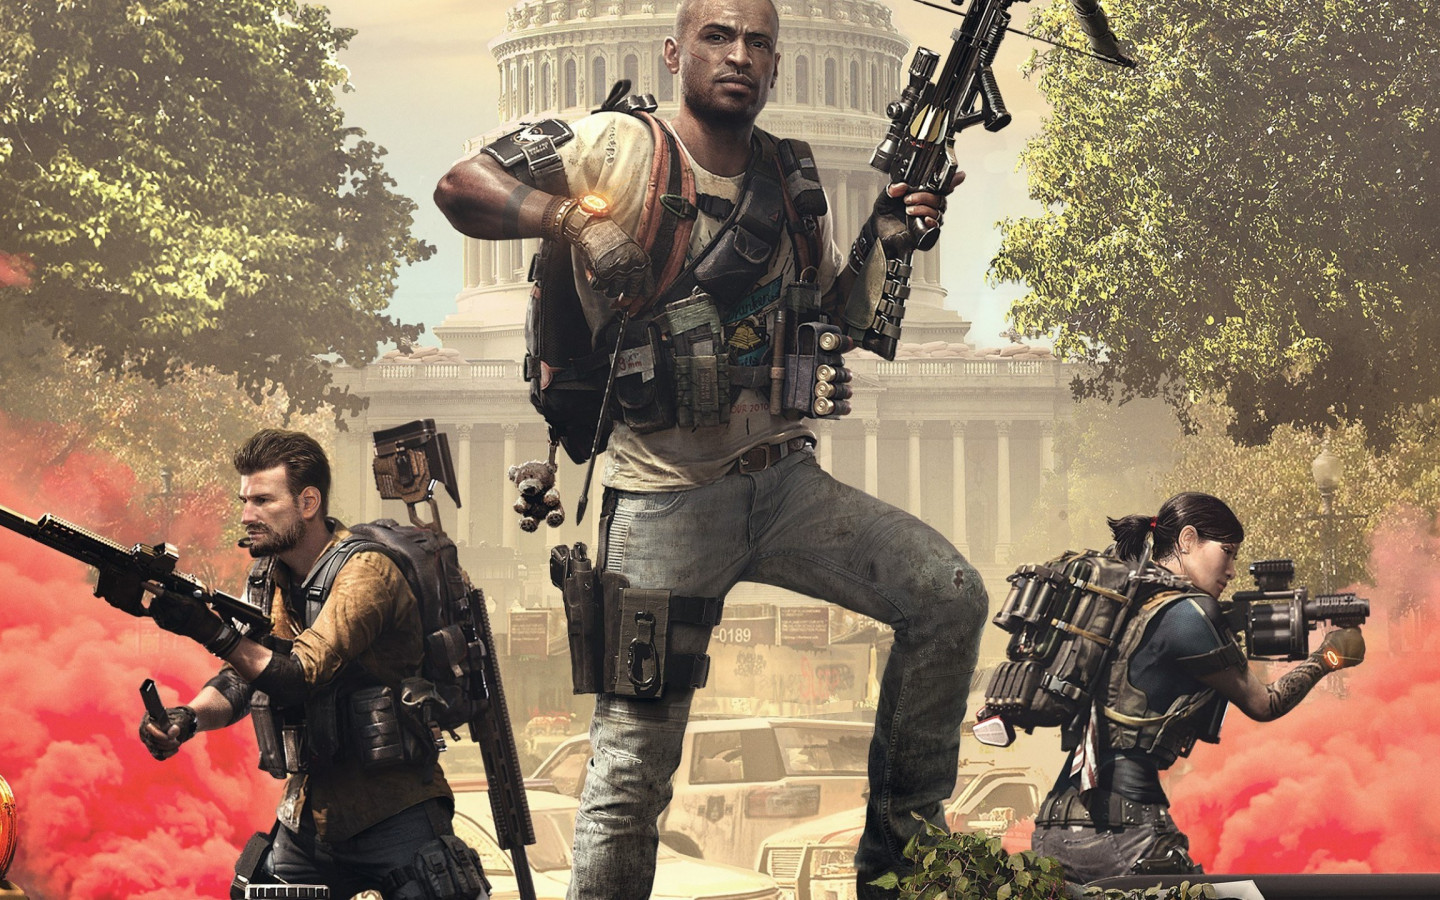 Tom Clancy's The Division 2 Episodes 2019 wallpaper 1440x900